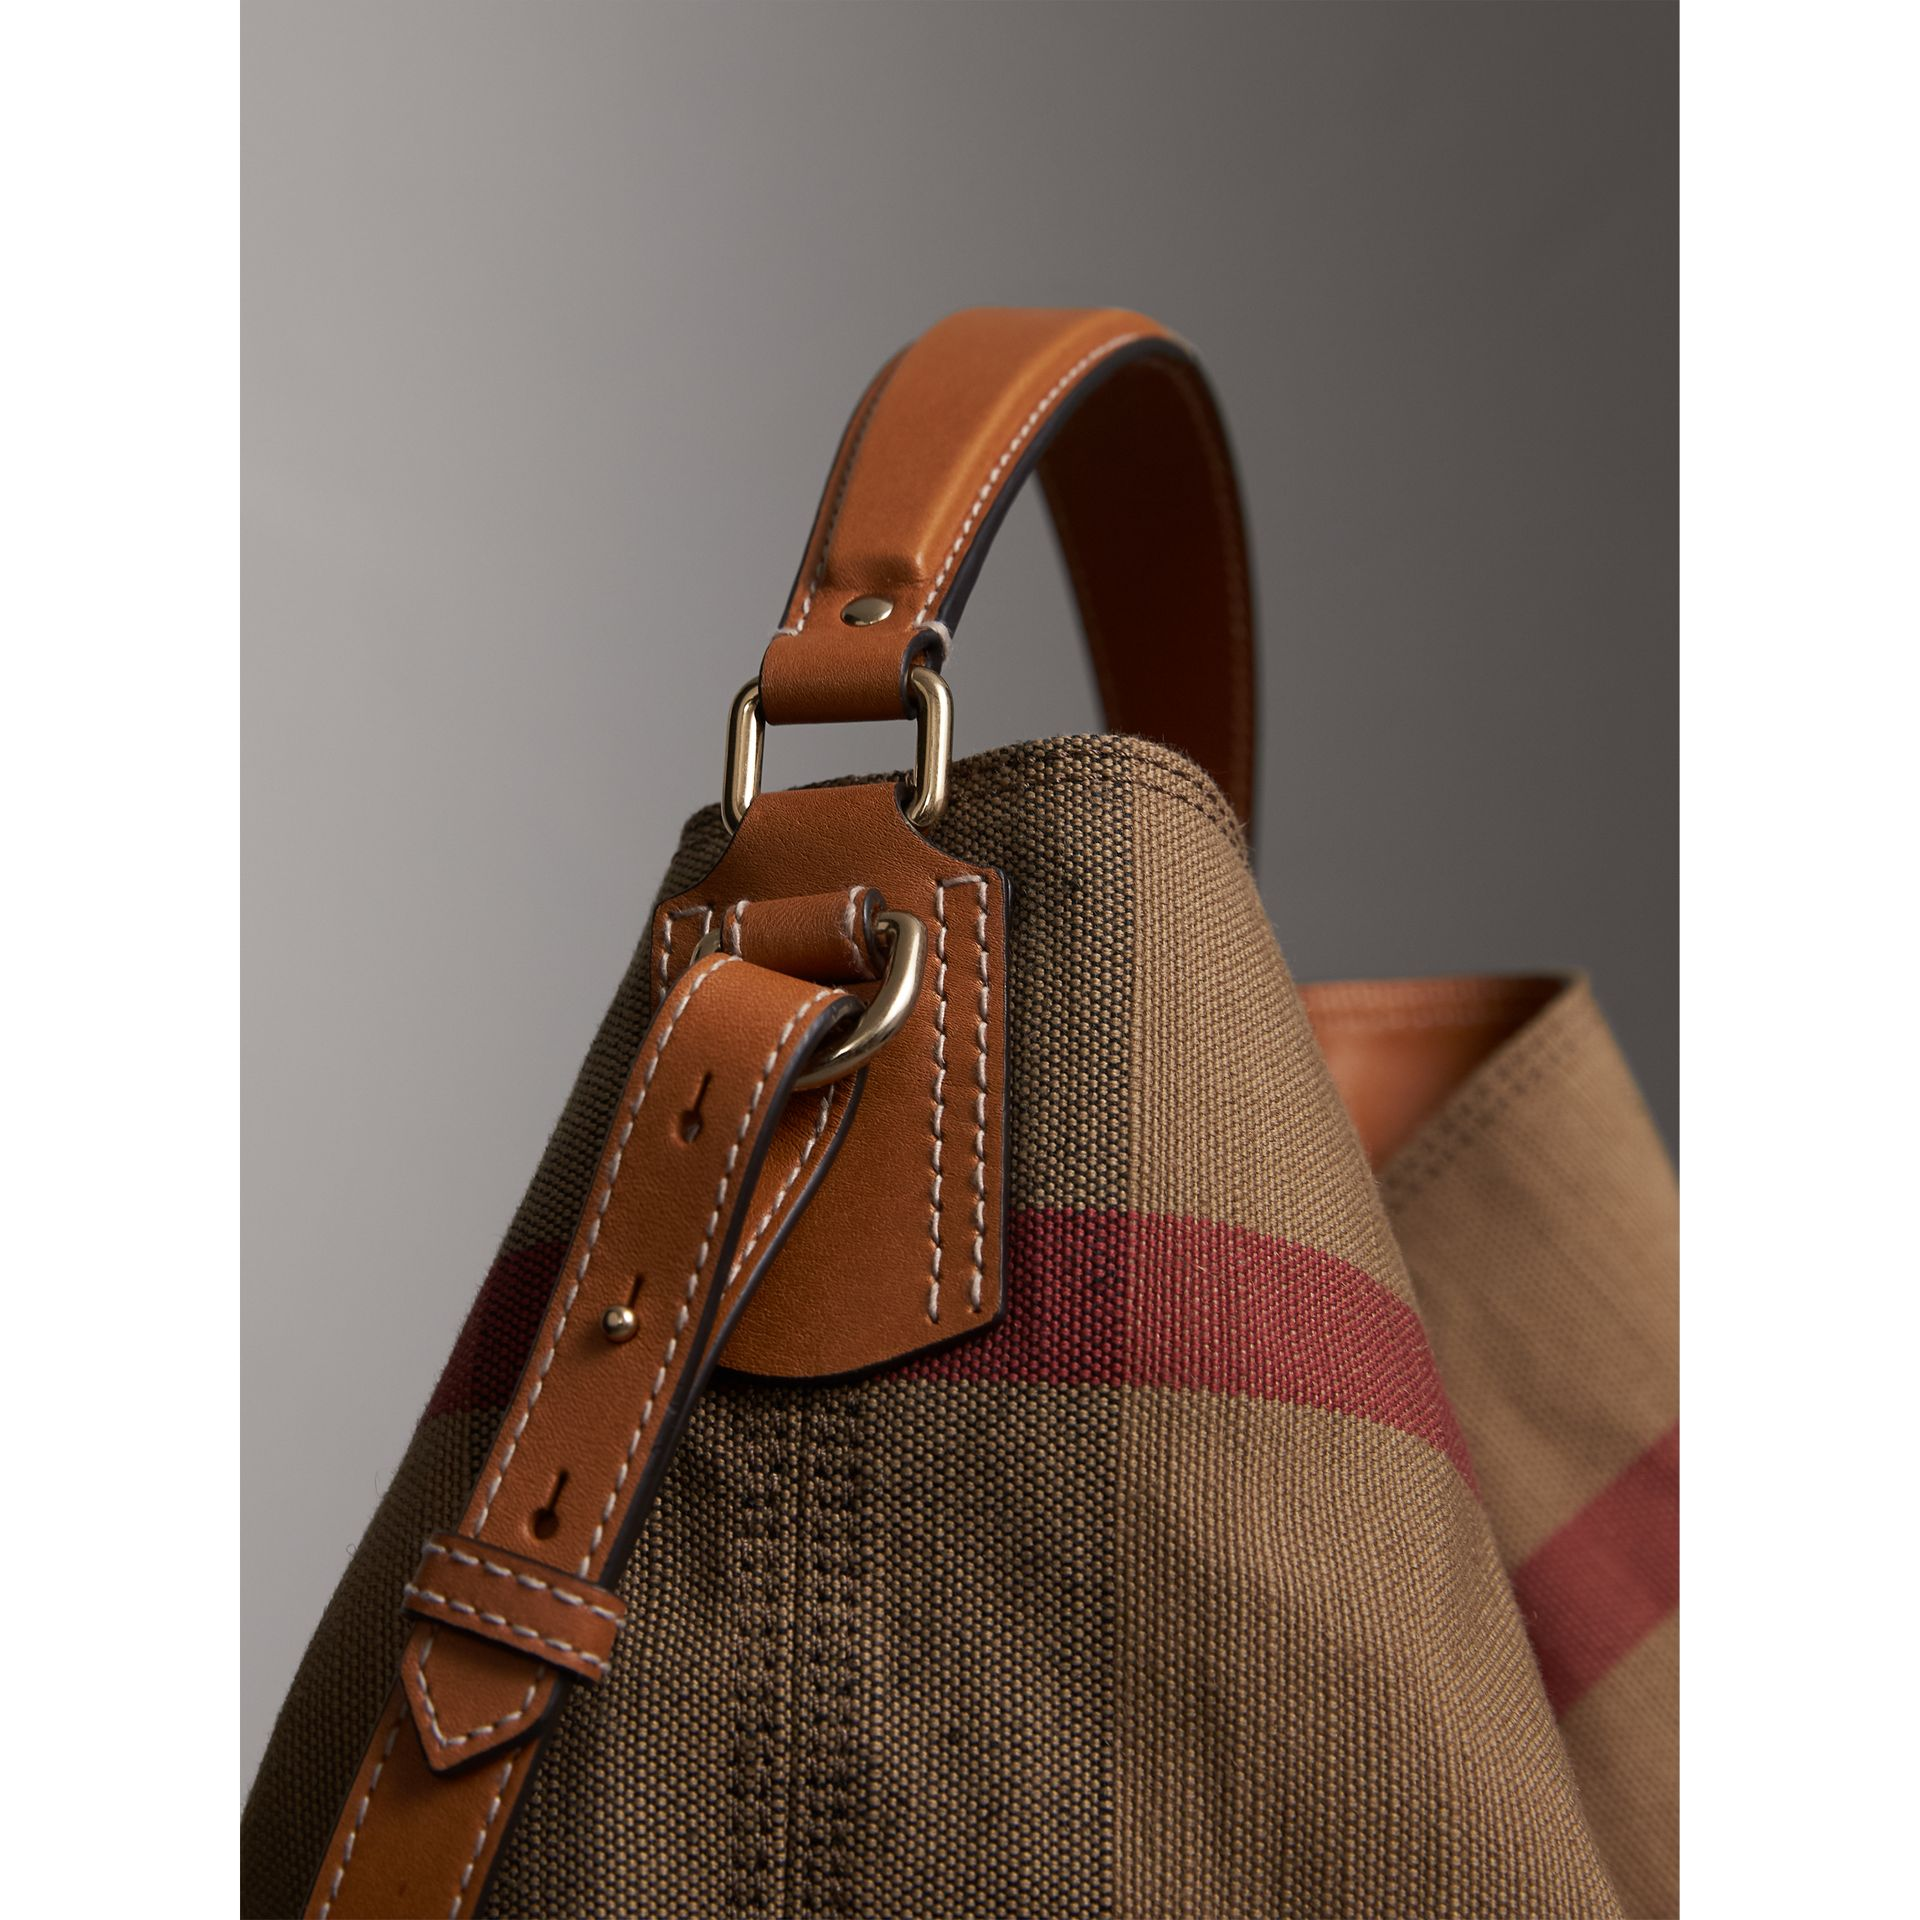 Medium Canvas Check Hobo Bag in Saddle Brown - Women | Burberry - gallery image 2